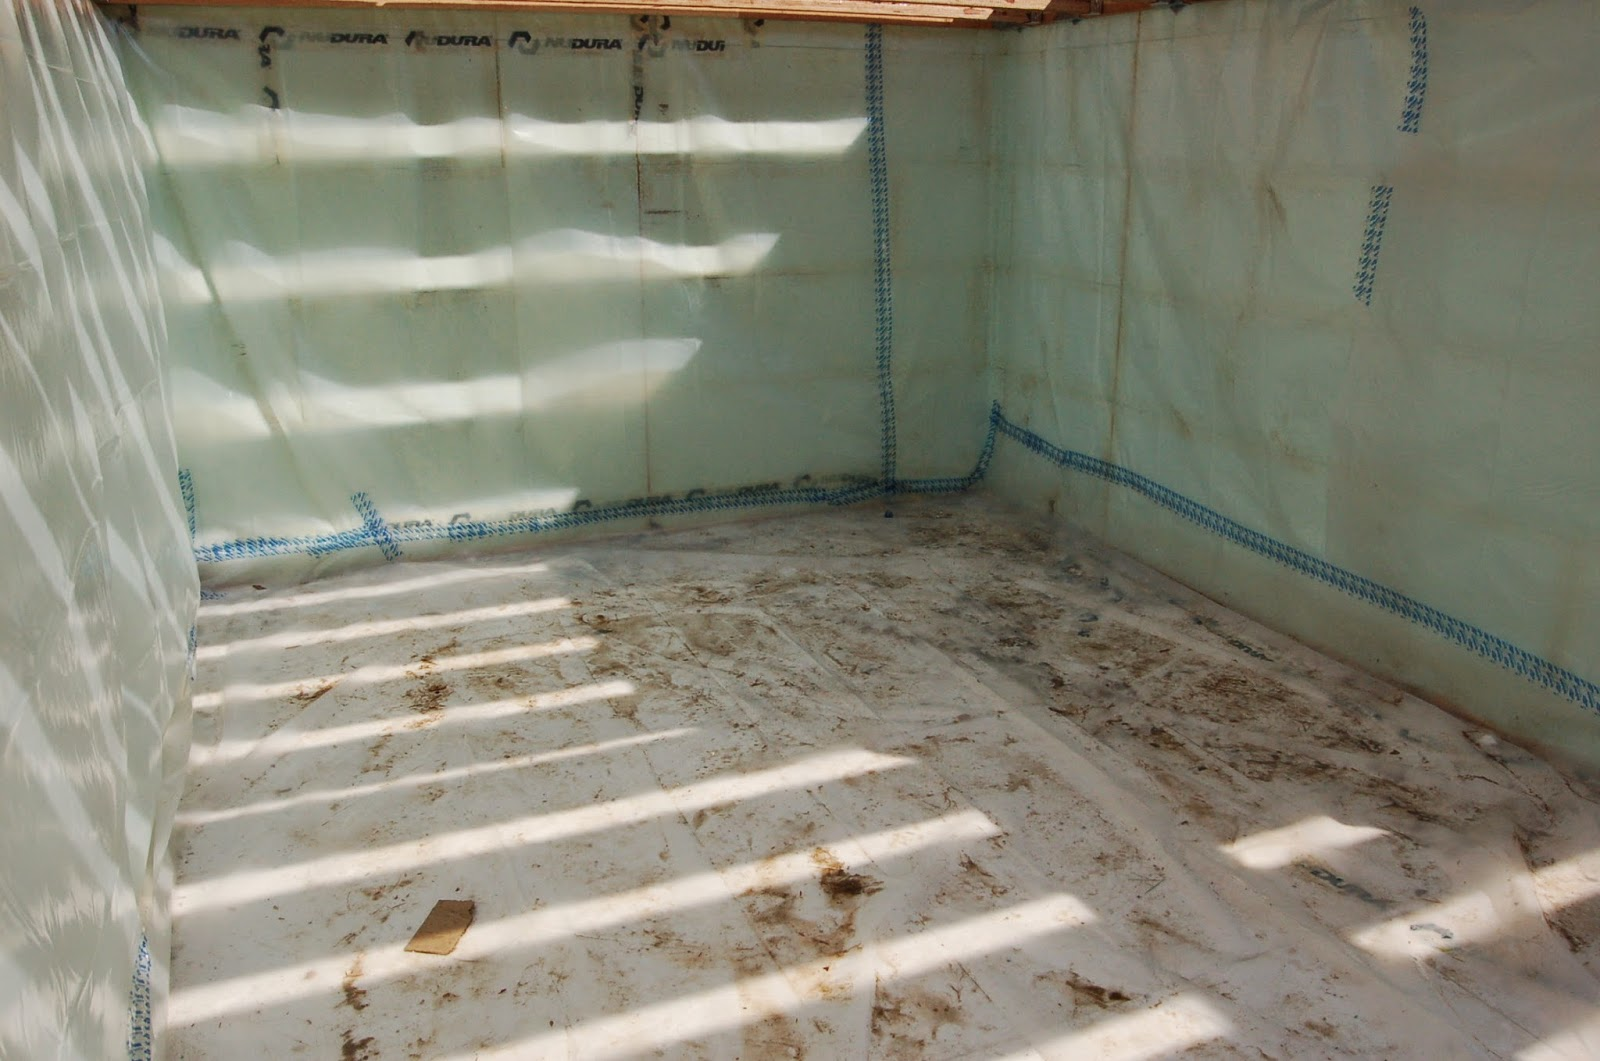 A Continuous Vapor Barrier Is Added To Our Basement Foundation, With Taping  At All Seams And Penetrations. This Barrier Will Be Under The Concrete Slab  Of ...